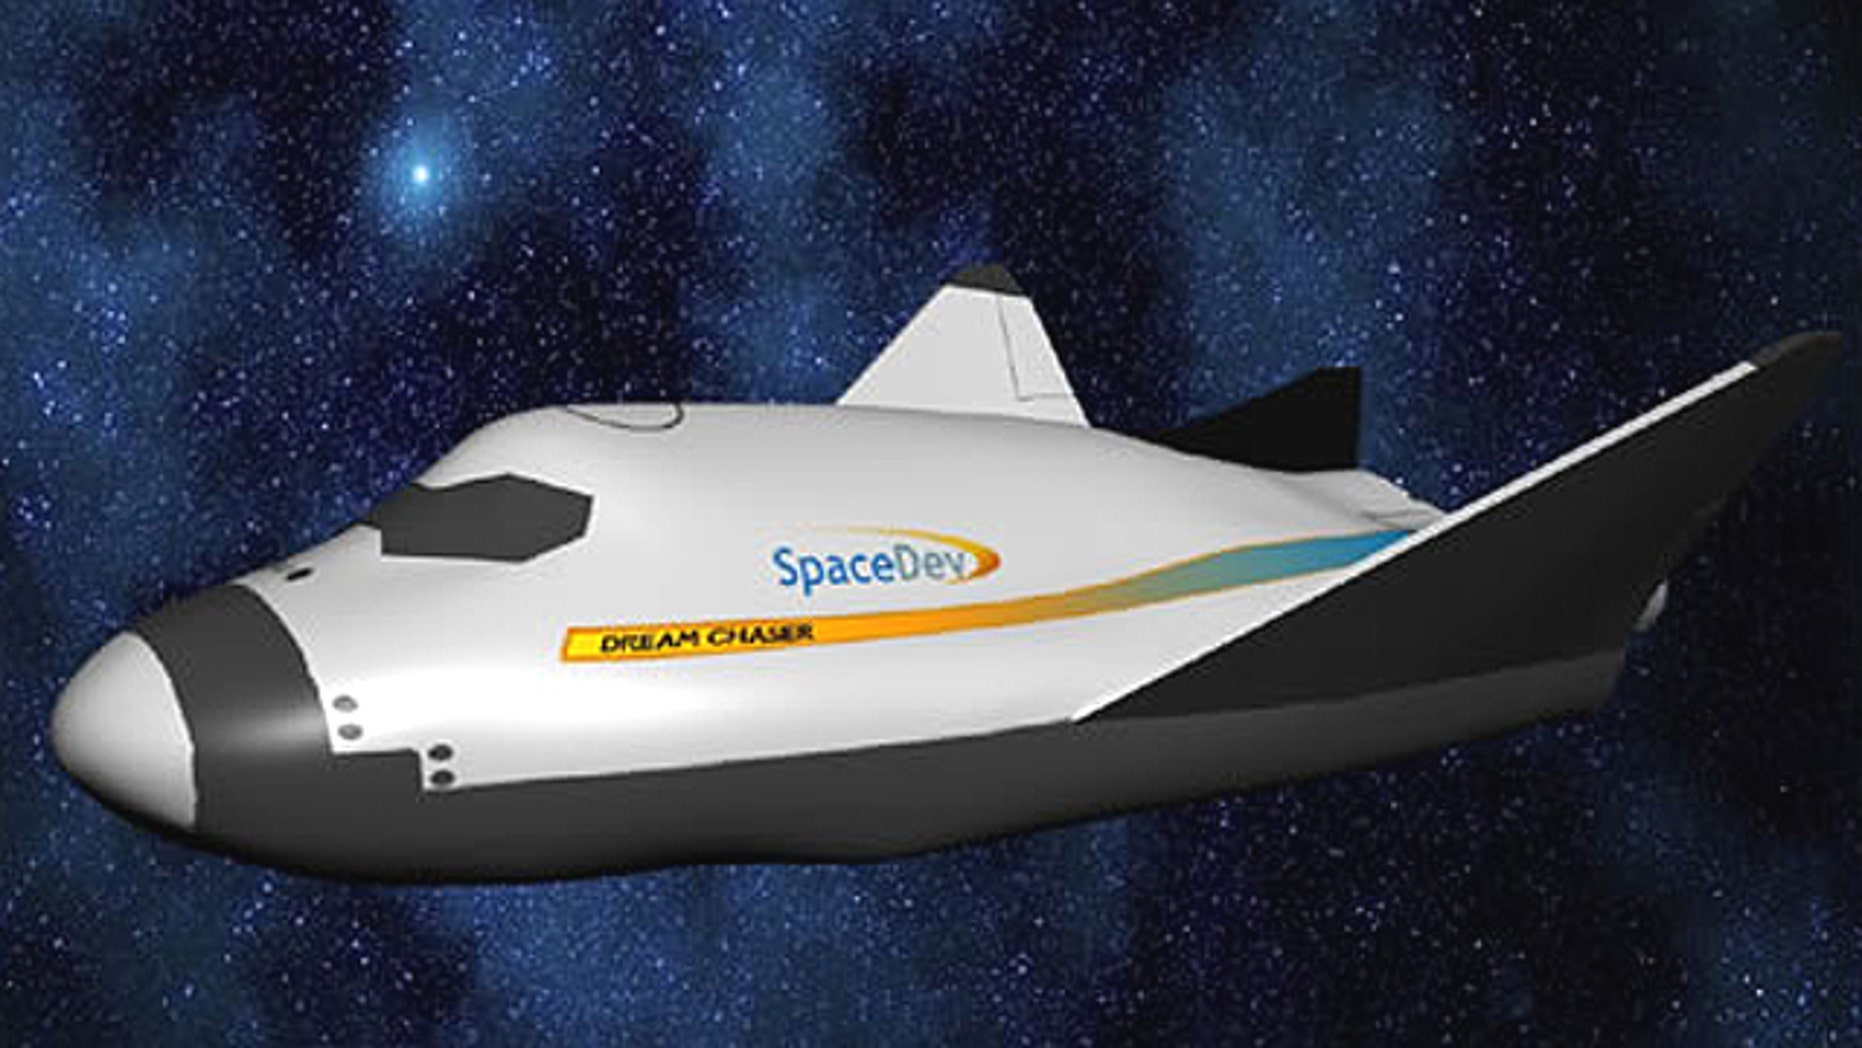 Dream Chaser, a design for a human grade spacevehicle in contention to replace NASA's aging space shuttle fleet.